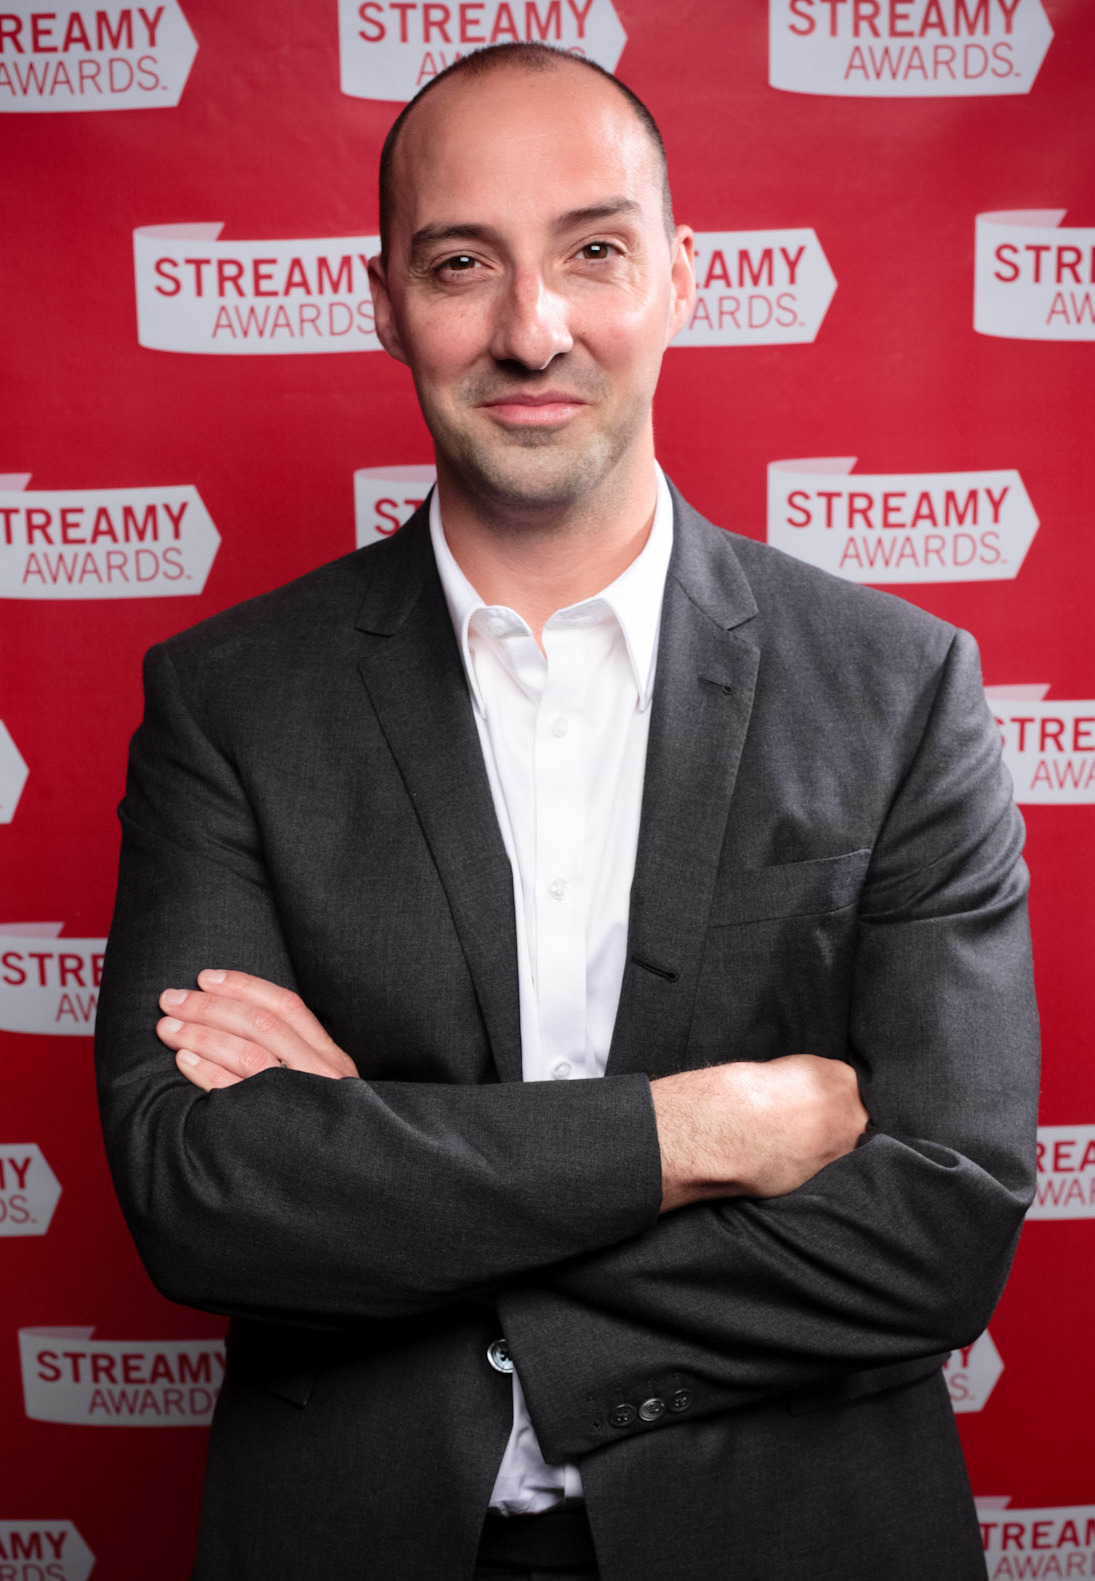 The 47-year old son of father (?) and mother(?) Tony Hale in 2018 photo. Tony Hale earned a  million dollar salary - leaving the net worth at 3 million in 2018